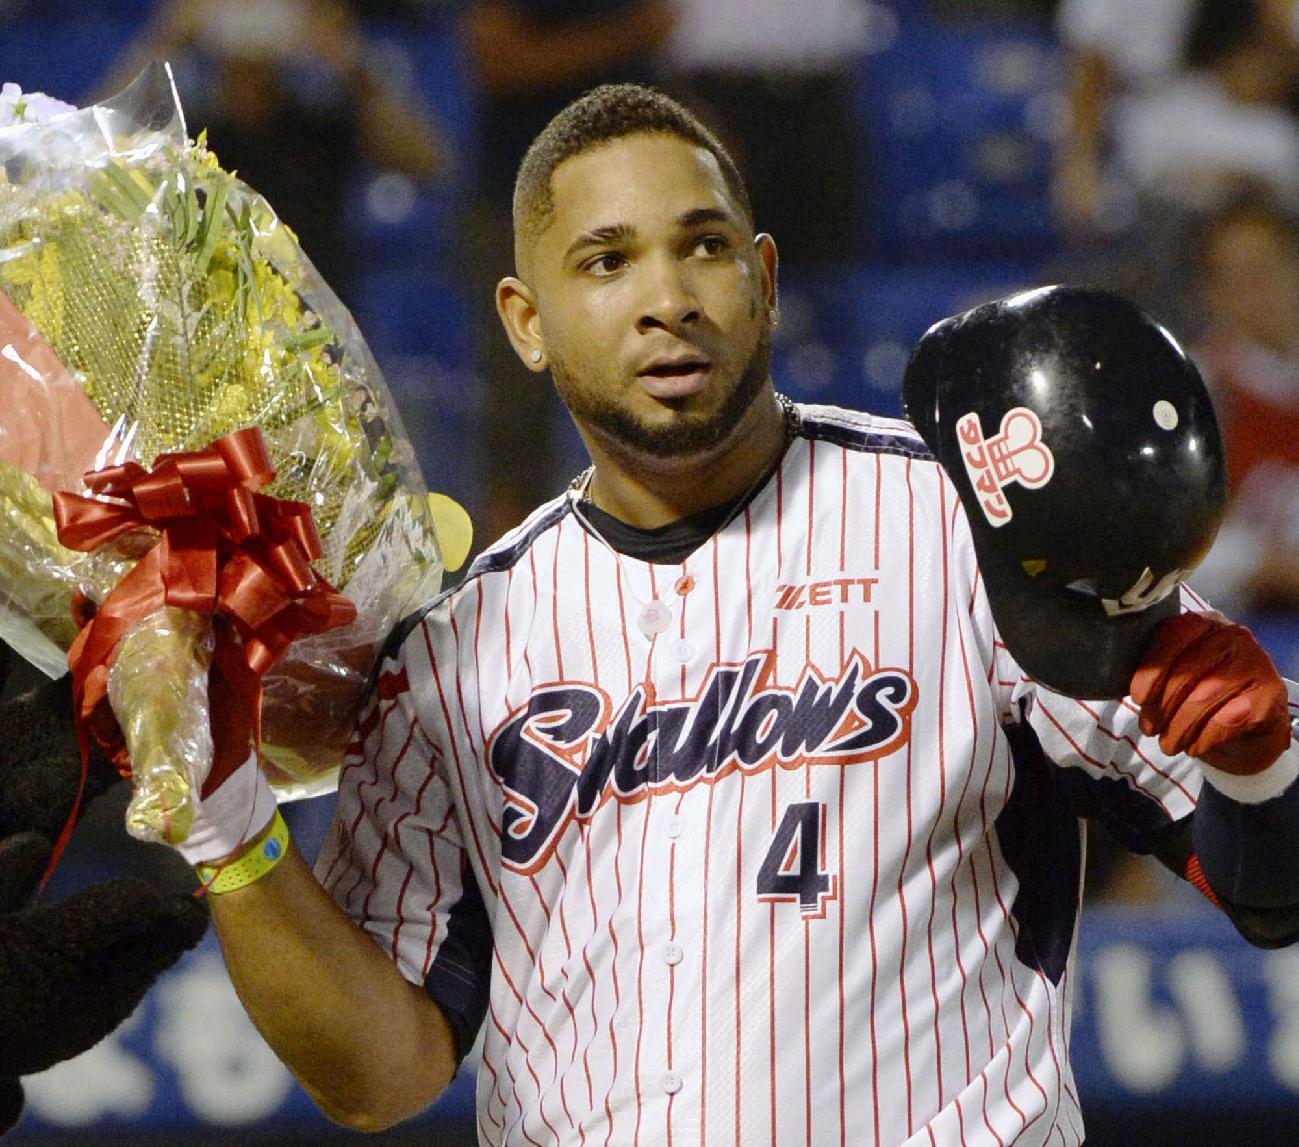 Yakult Swallows' Wladimir Balentien holding a bouquet of flowers and his helmet celebrates with fans after hitting his 55th home run of the season in a regular season game against Hiroshima Carp at Jingu Stadium in Tokyo Wednesday, Sept. 11, 2013. Former major leaguer Balentien matched Japan record set by Sadaharu Oh in 1964 and equaled by ex-major leaguers Tuffy Rhodes in 2001 and Alex Cabrera in 2002